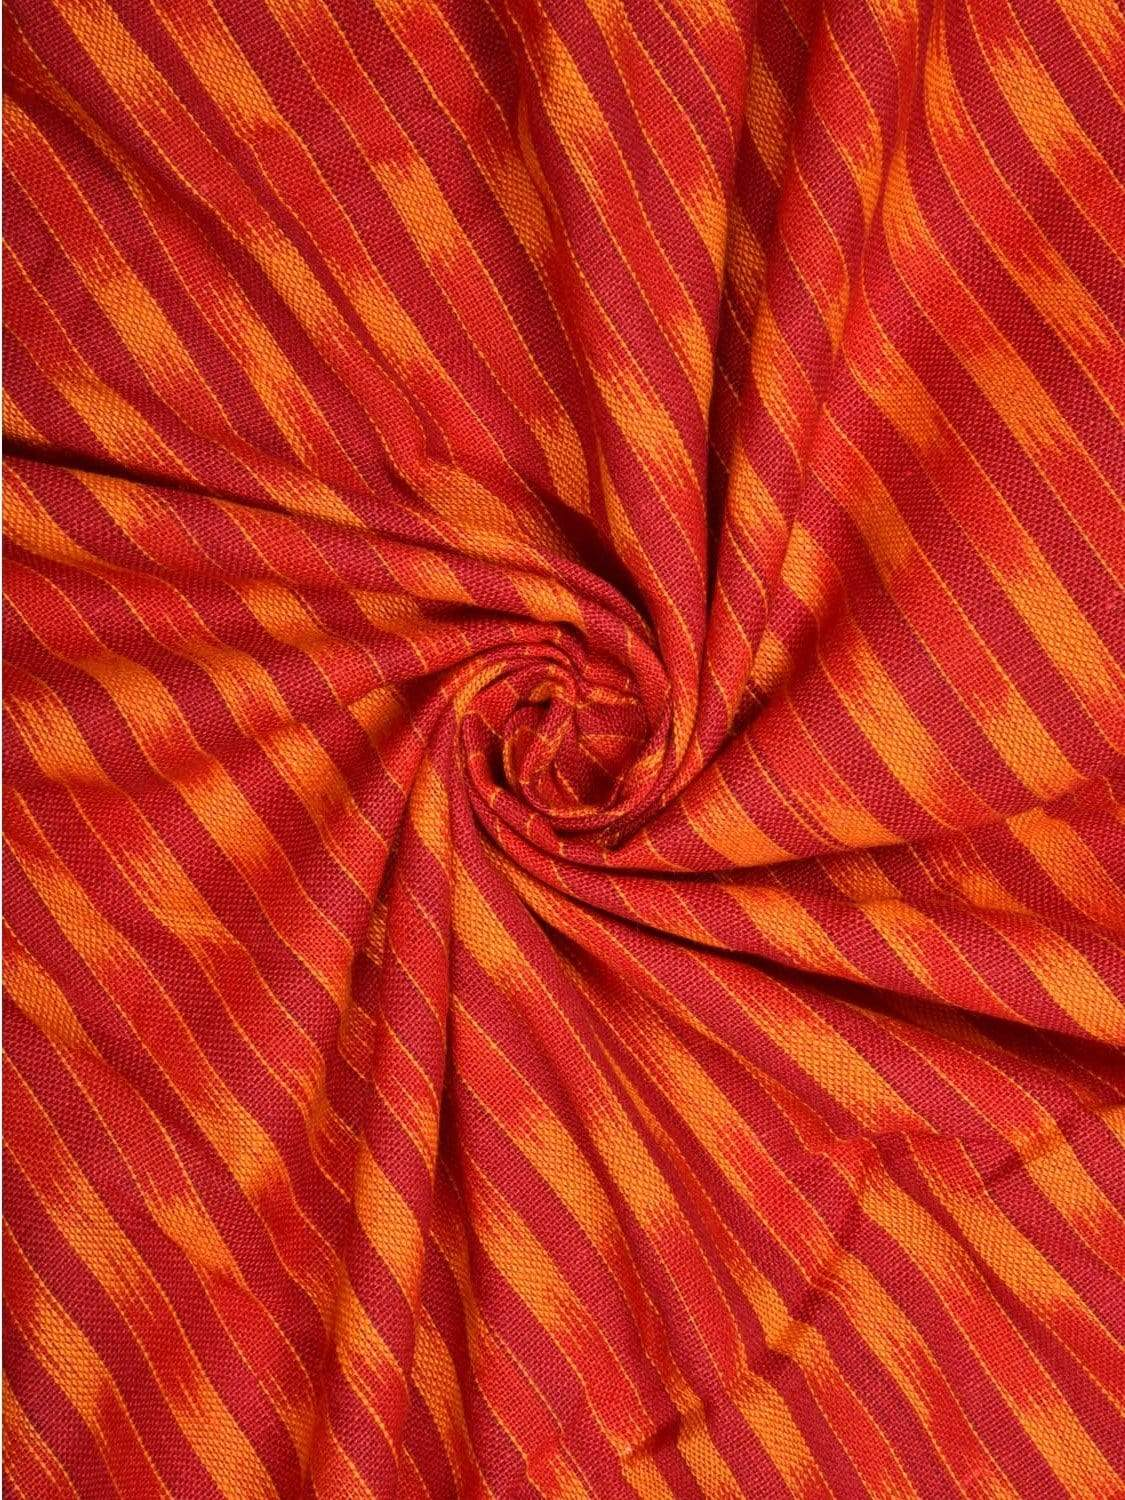 Red and Yellow Pochampally Ikat Cotton Handloom Fabric Material with Strips Design f0132